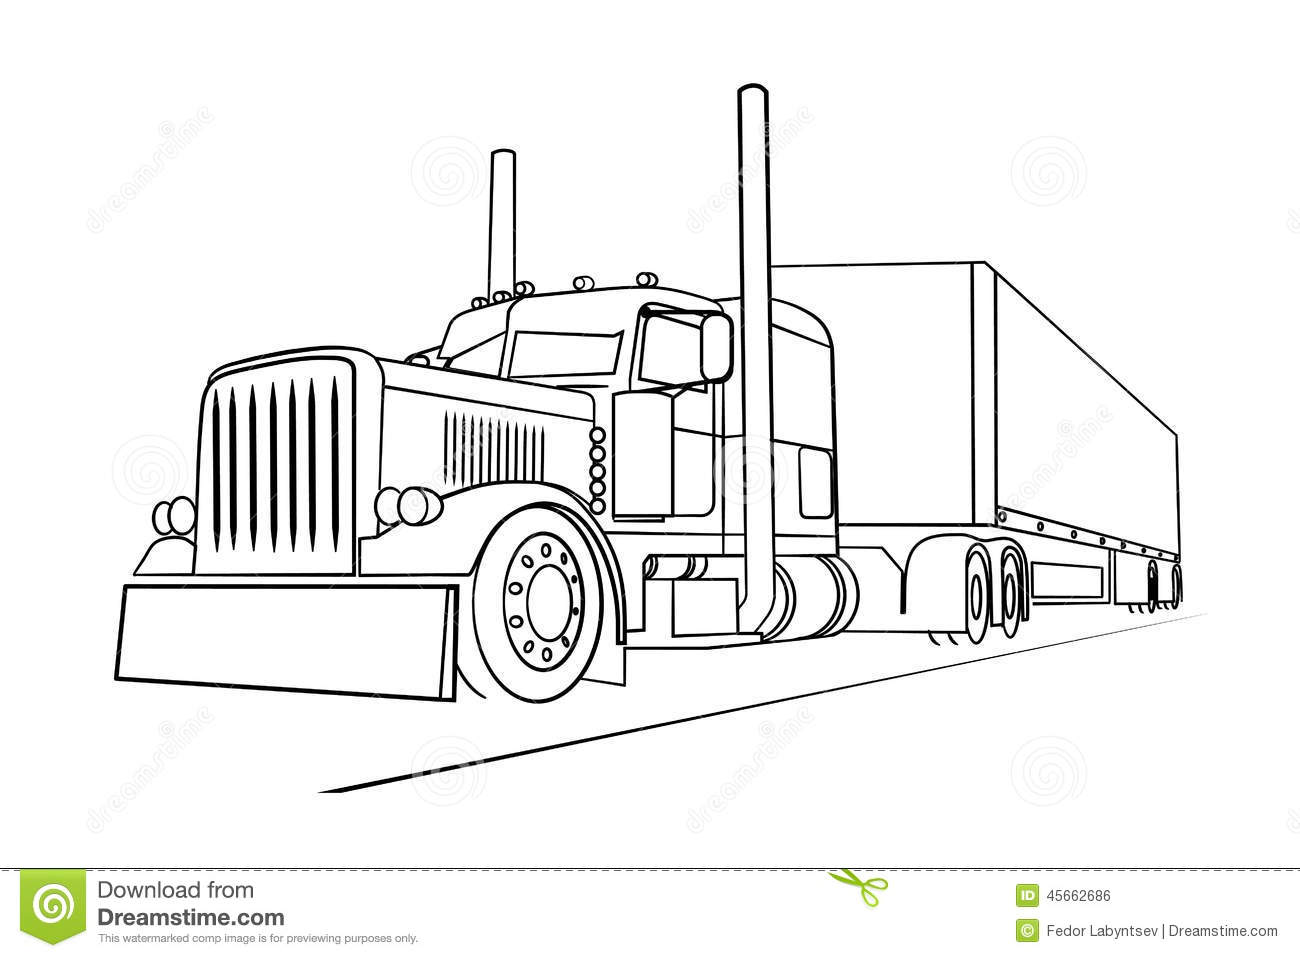 Blueprint Software additionally Caterpillar House Shipping Container Homes Plans Detail in addition Pop Up House Multipod Studio as well Stock Illustration Girls Playing House Coloring Book likewise Stock Illustration Drawing Truck Transporting Load Image Presented Image45662686. on house plan